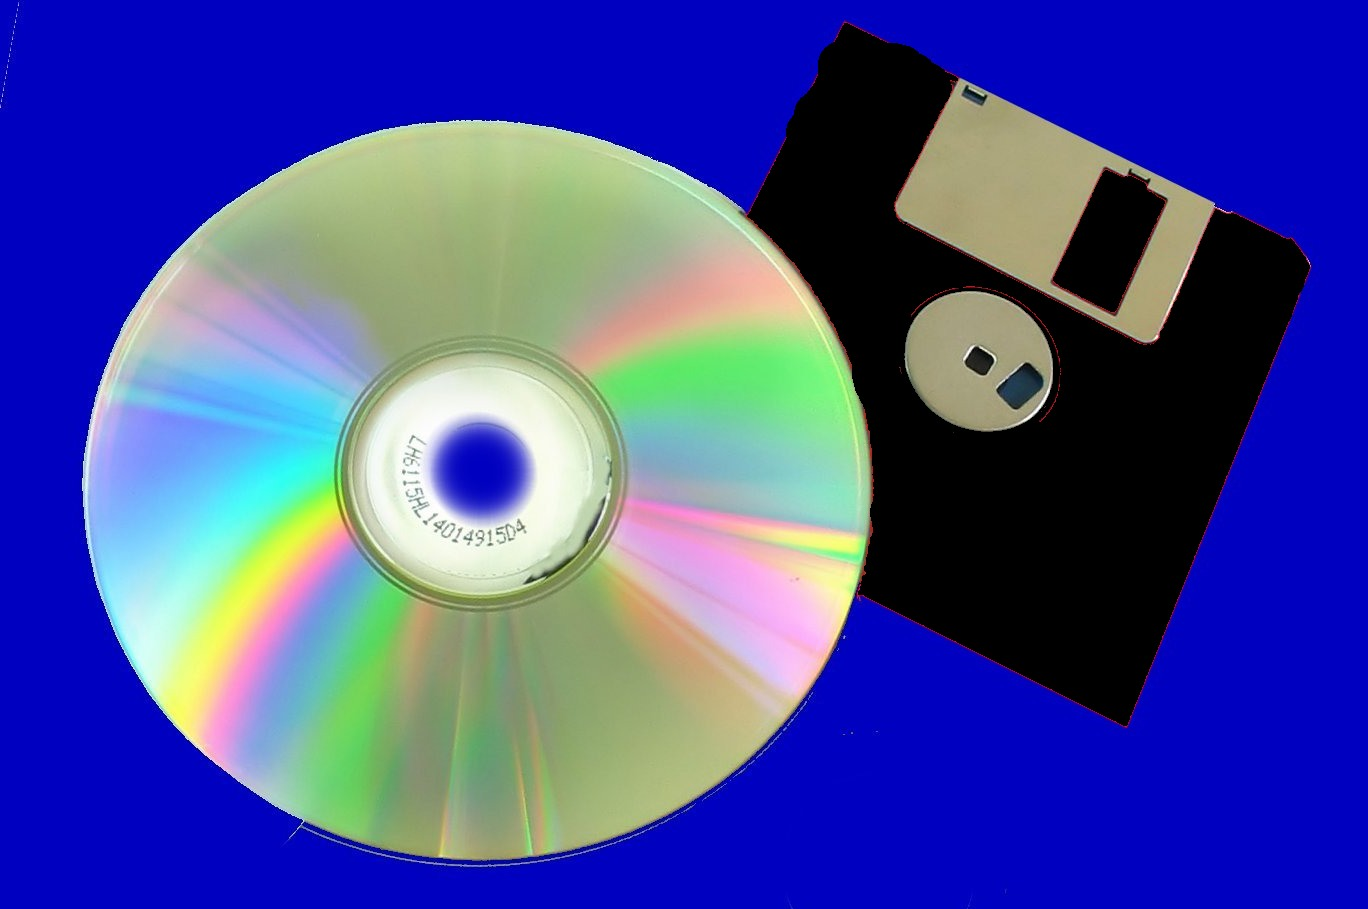 A CD and old floppy disk from an Apple computer.